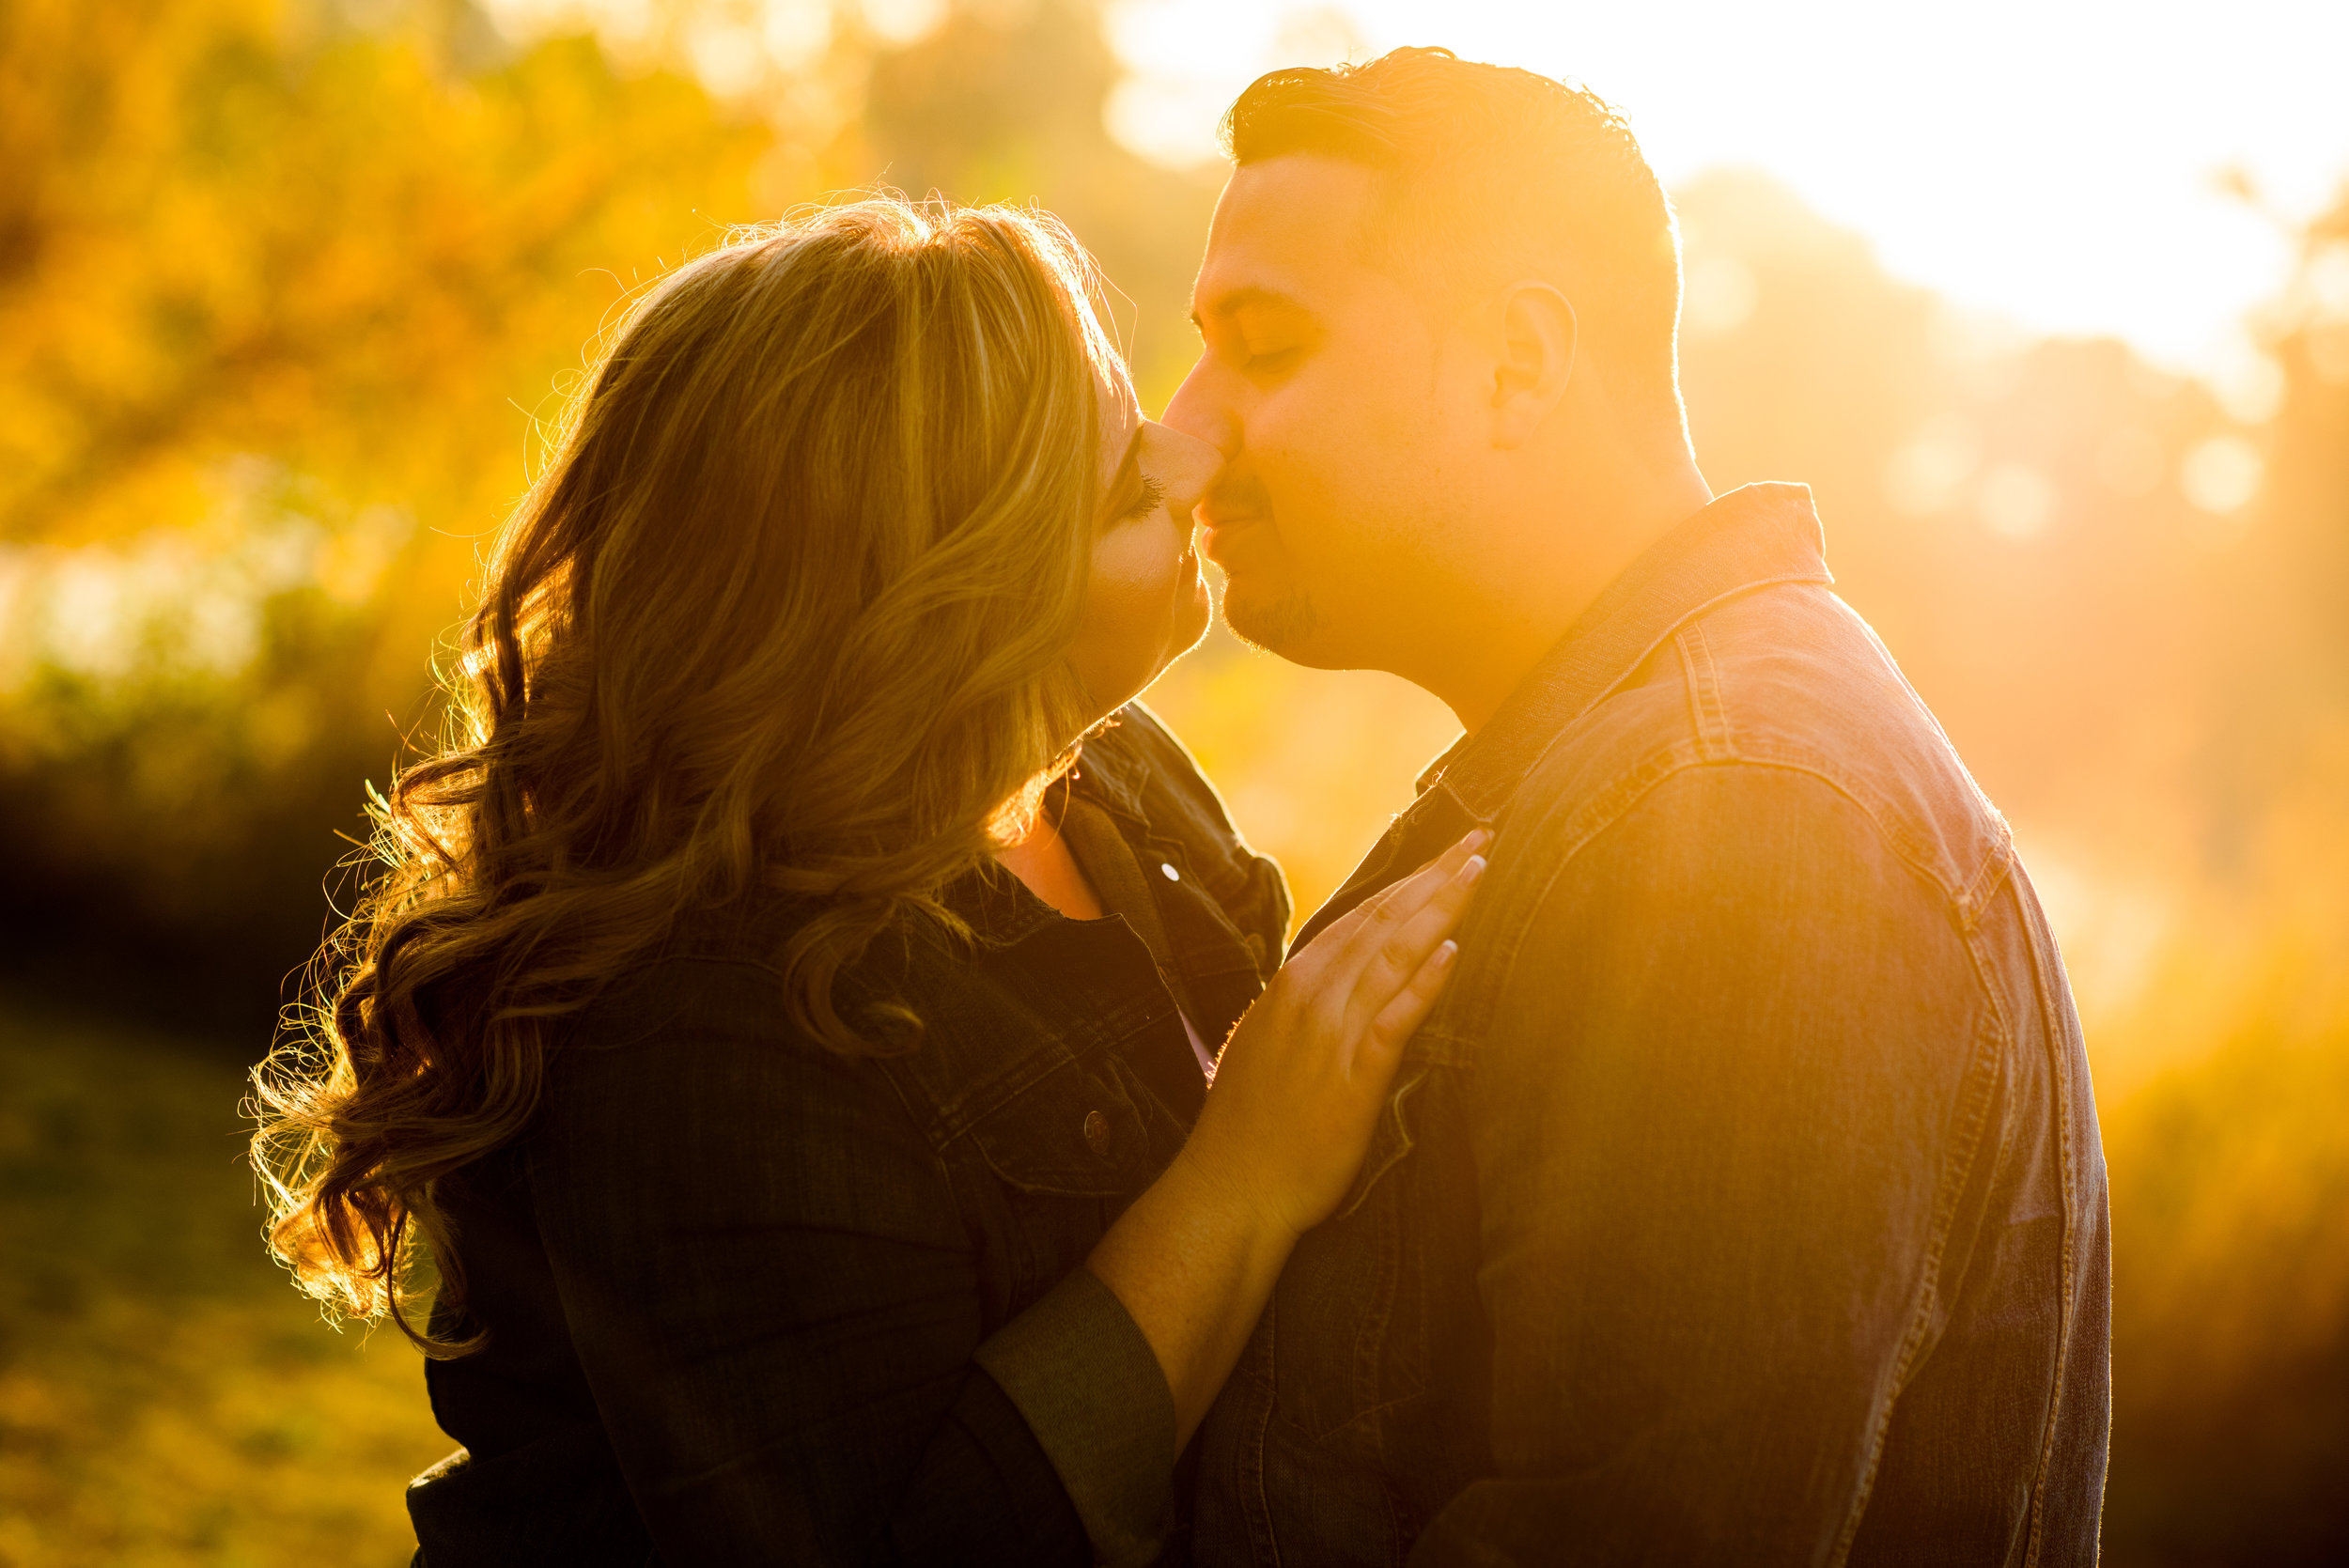 lynzie-javier-010-sacramento-california-engagement-wedding-photographer-katherine-nicole-photography.JPG